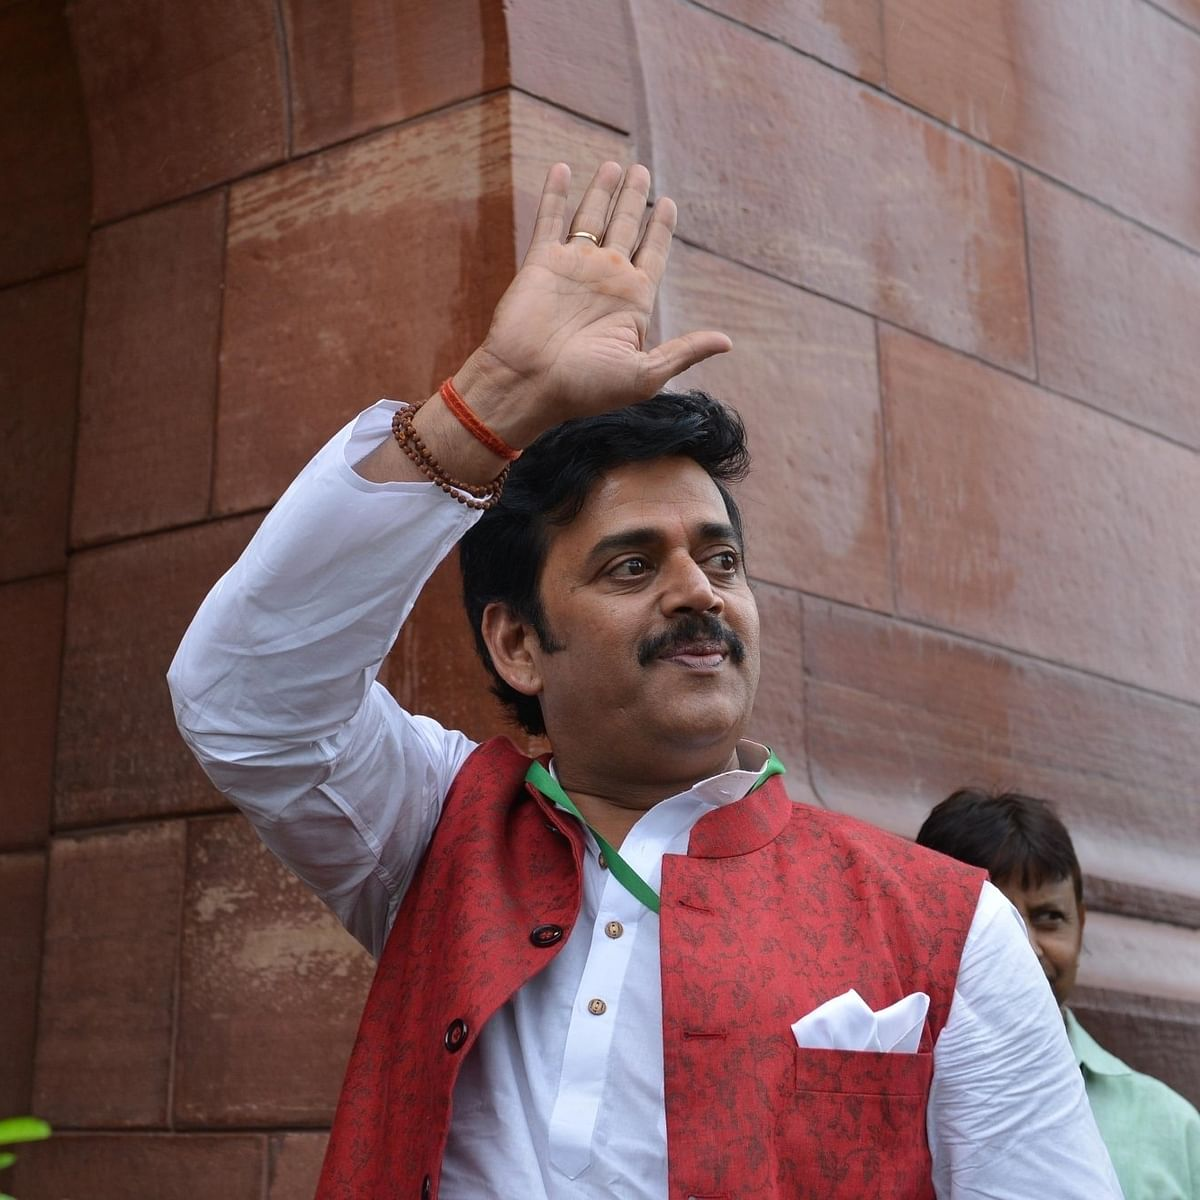 BJP MP Ravi Kishan assigned Y+ security after getting threats over 'Bollywood drug nexus' comments in Parliament